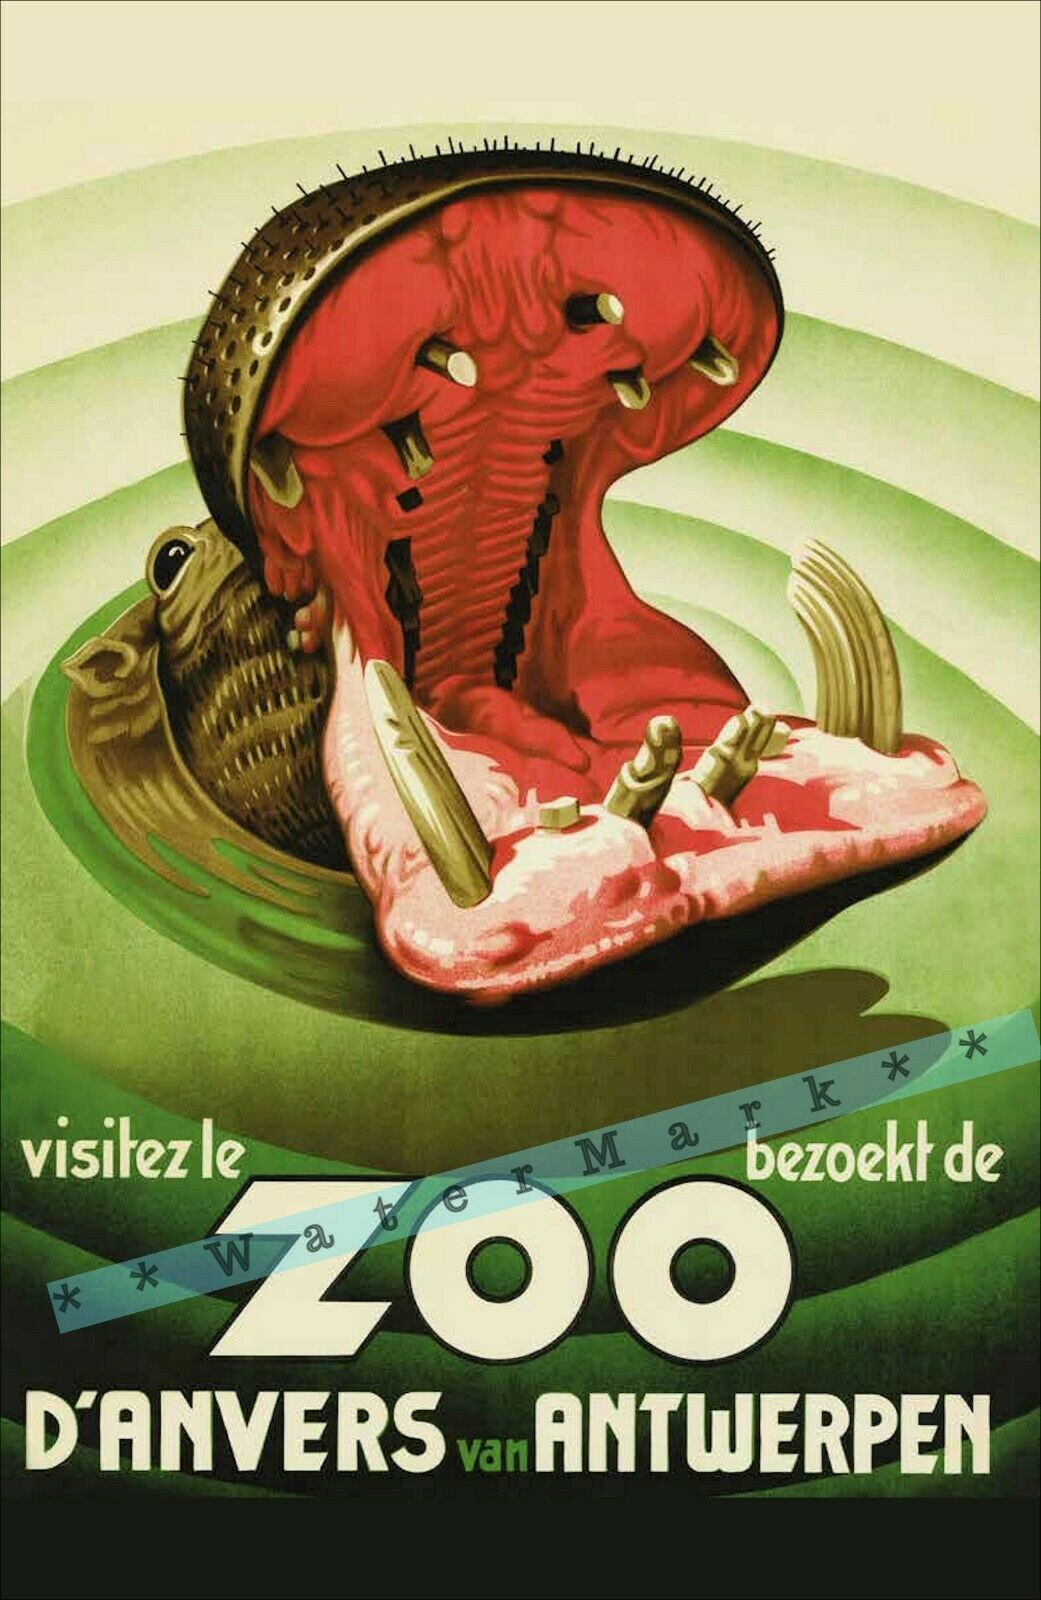 EXHIBITION NATURE ZOO BROOKSIDE USA VINTAGE POSTER ART PRINT 831PY